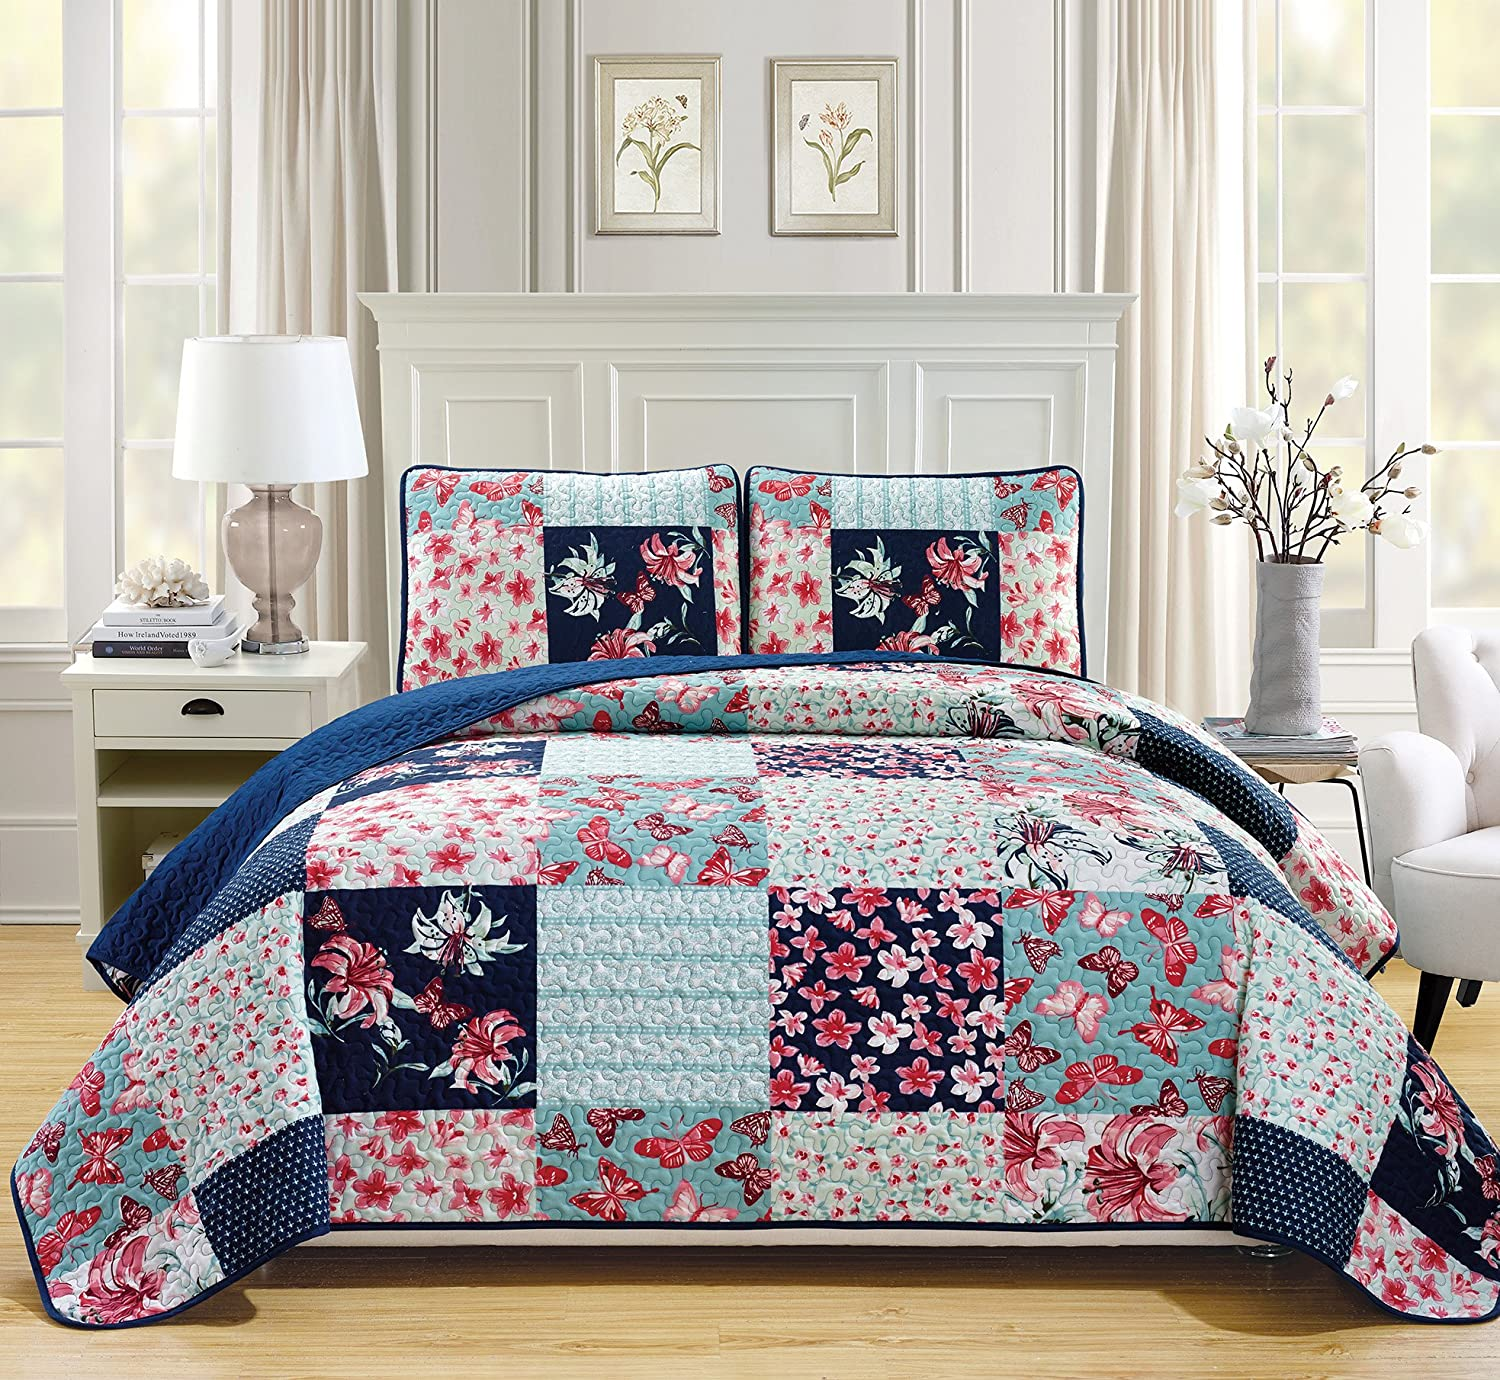 Mk Collection 3pc Bedspread Coverlet Quilted Flower Butterfly Off White Navy Blue Teal Green Red Full/Queen Over Size 106